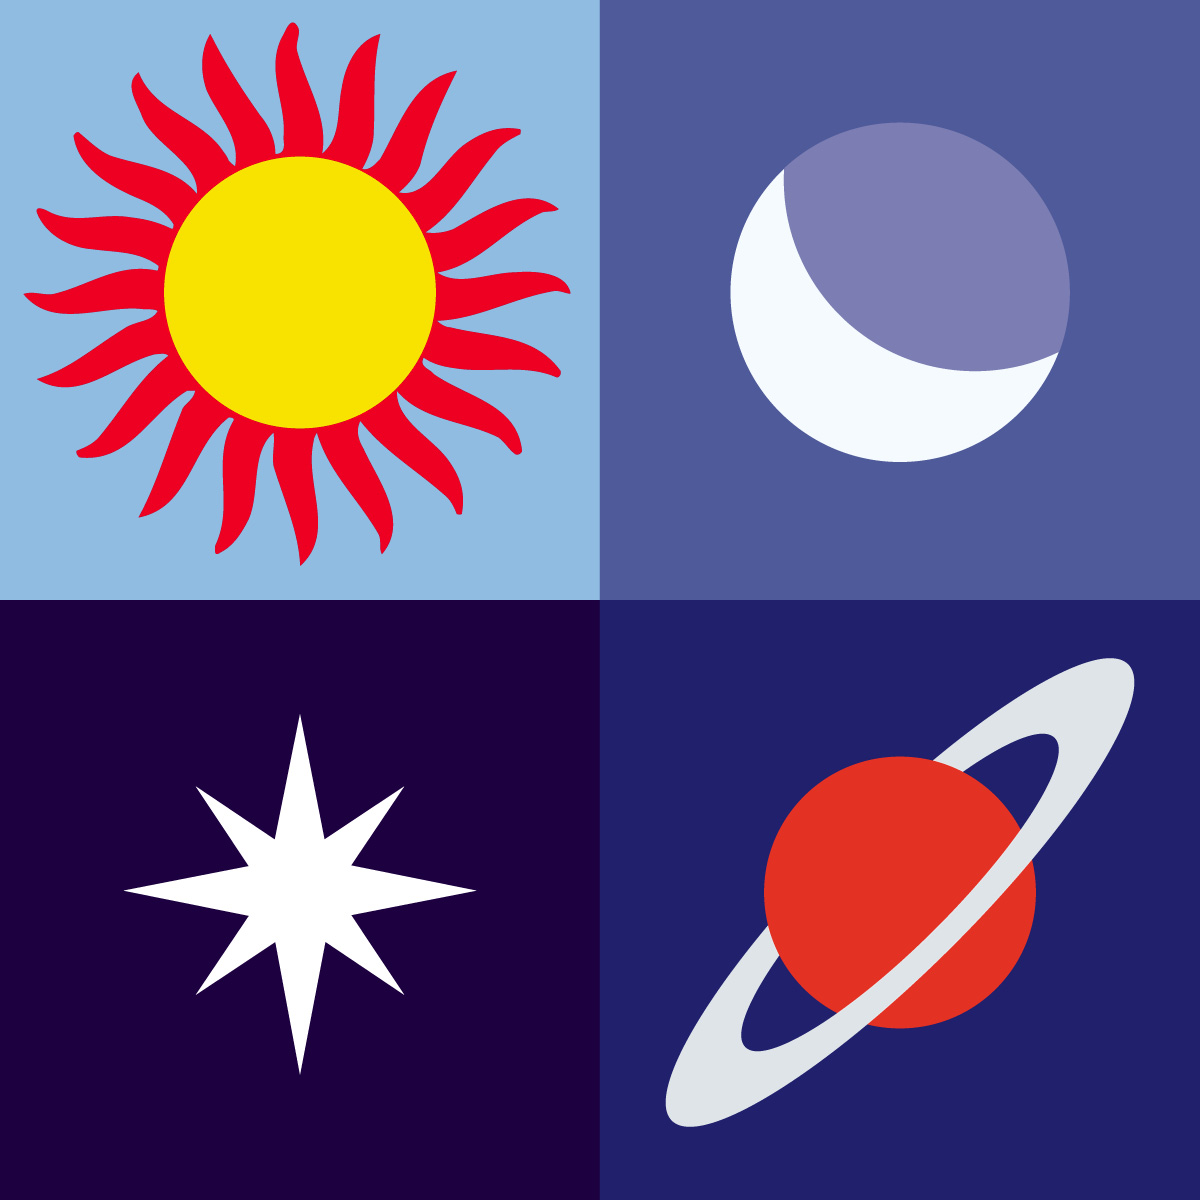 earth and space science clipart - photo #2